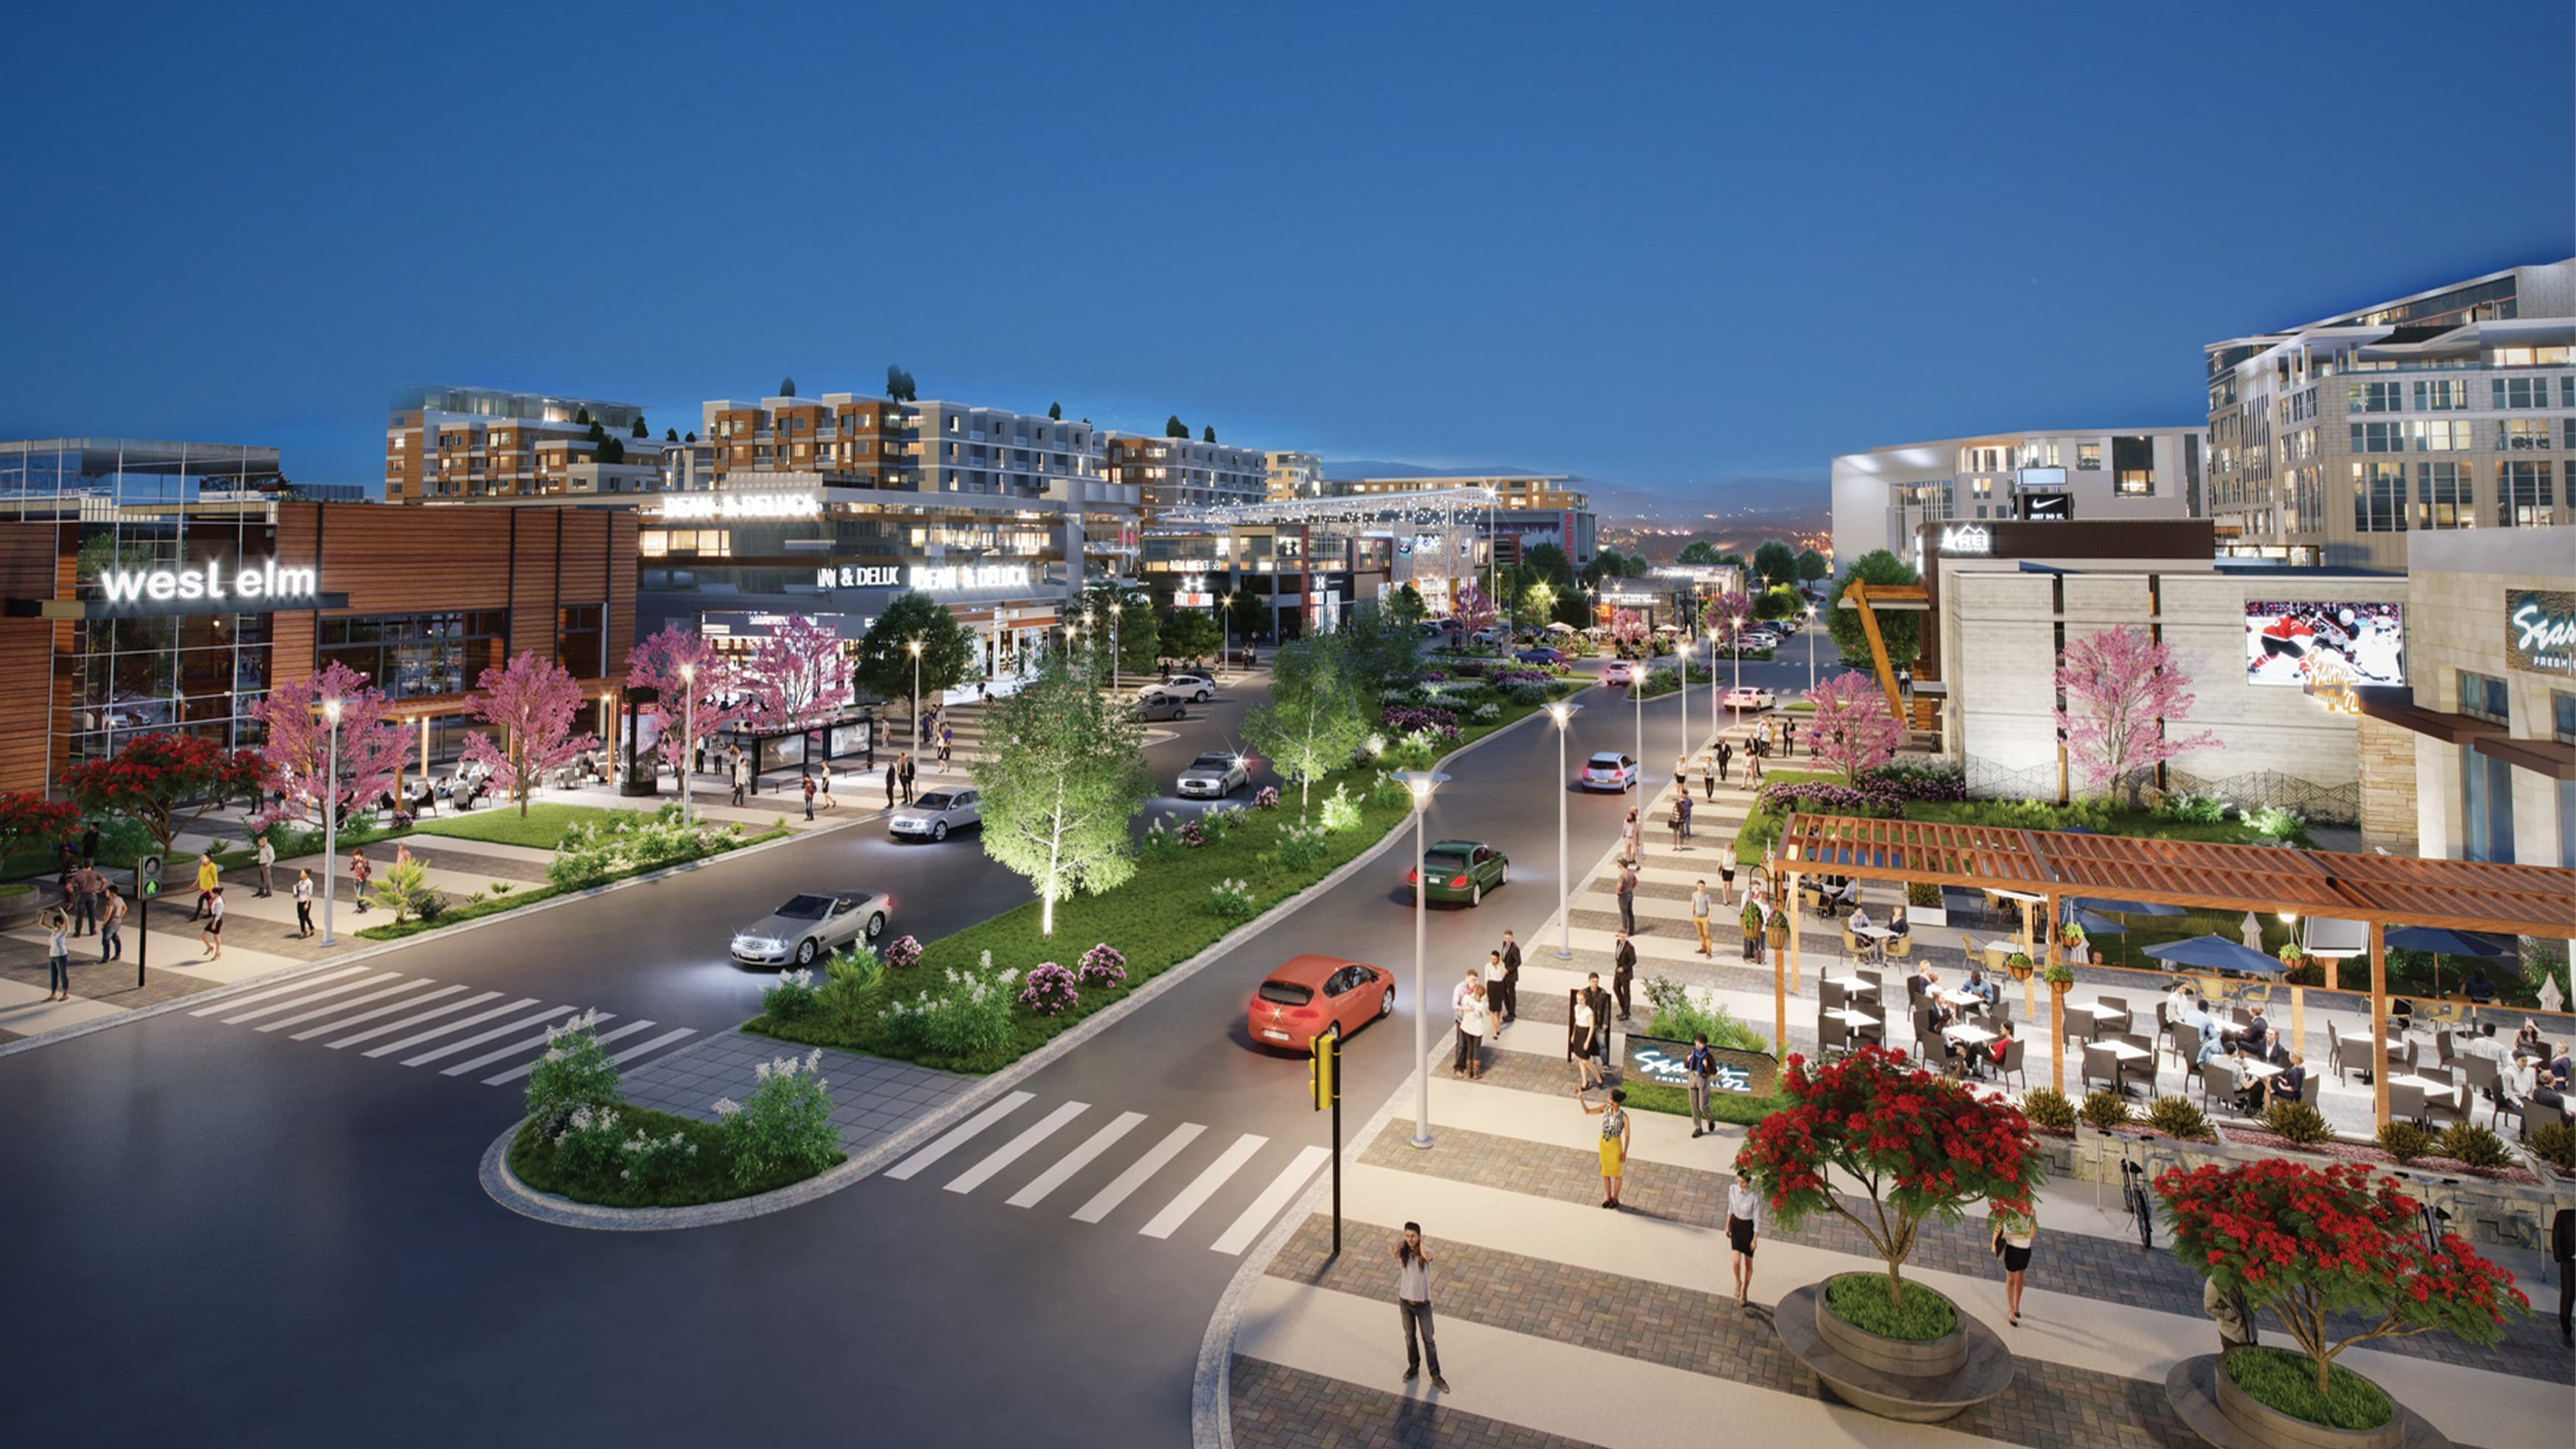 Evening view of a mixed-use and retail development with shopping, dining, and people walking around outdoors.